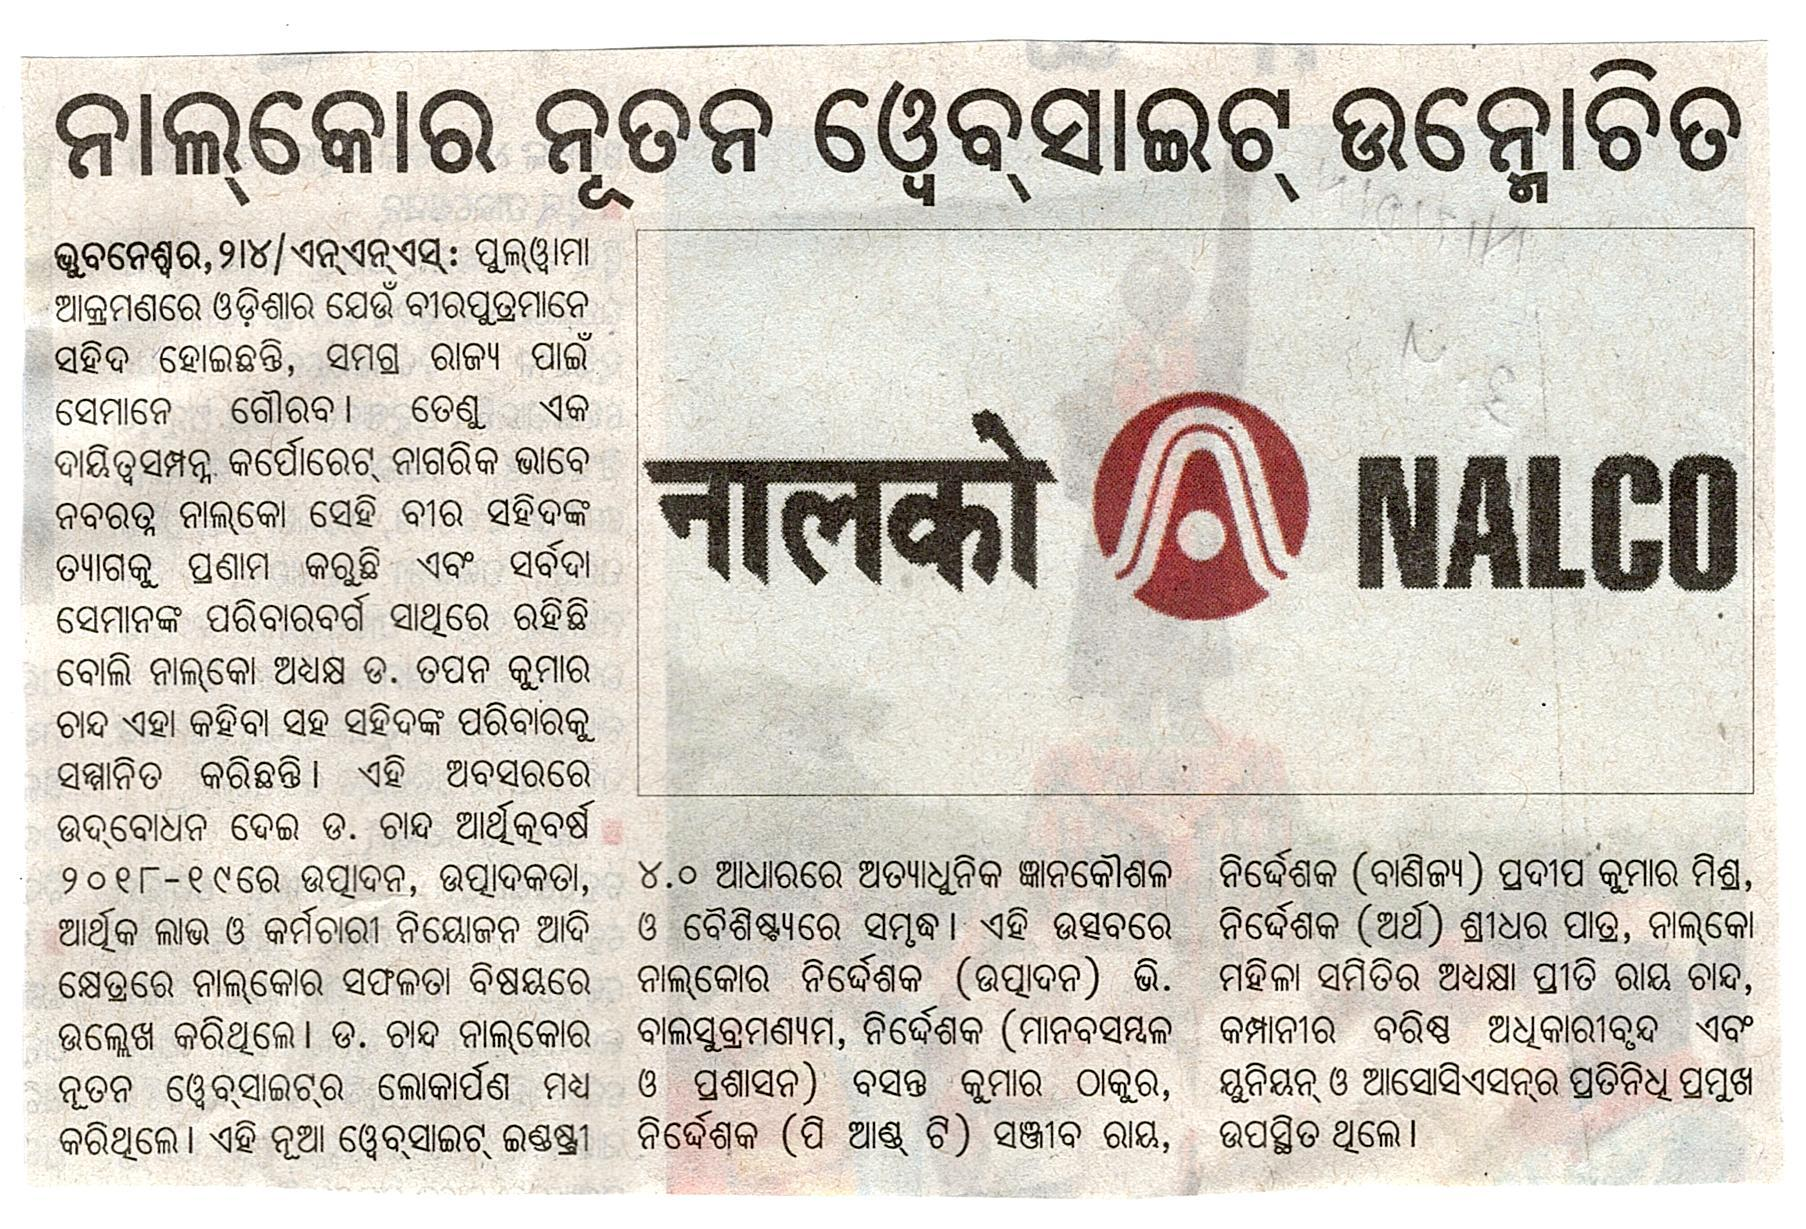 NALCO's new website launched